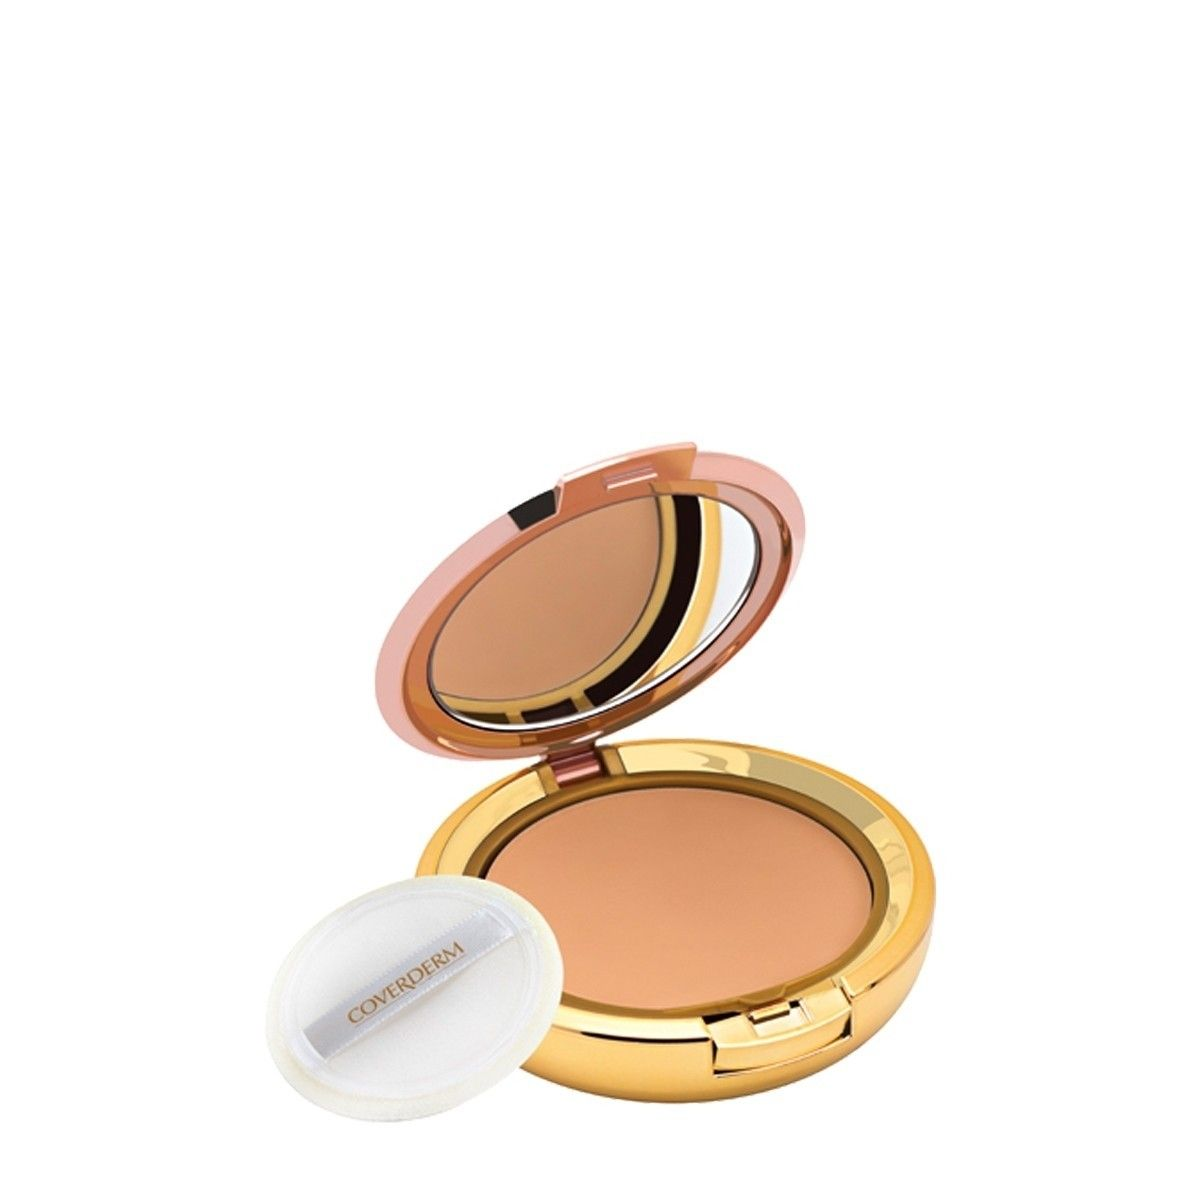 Afbeelding van Coverderm Compact Powder Color Dry 3 Poeder Make up